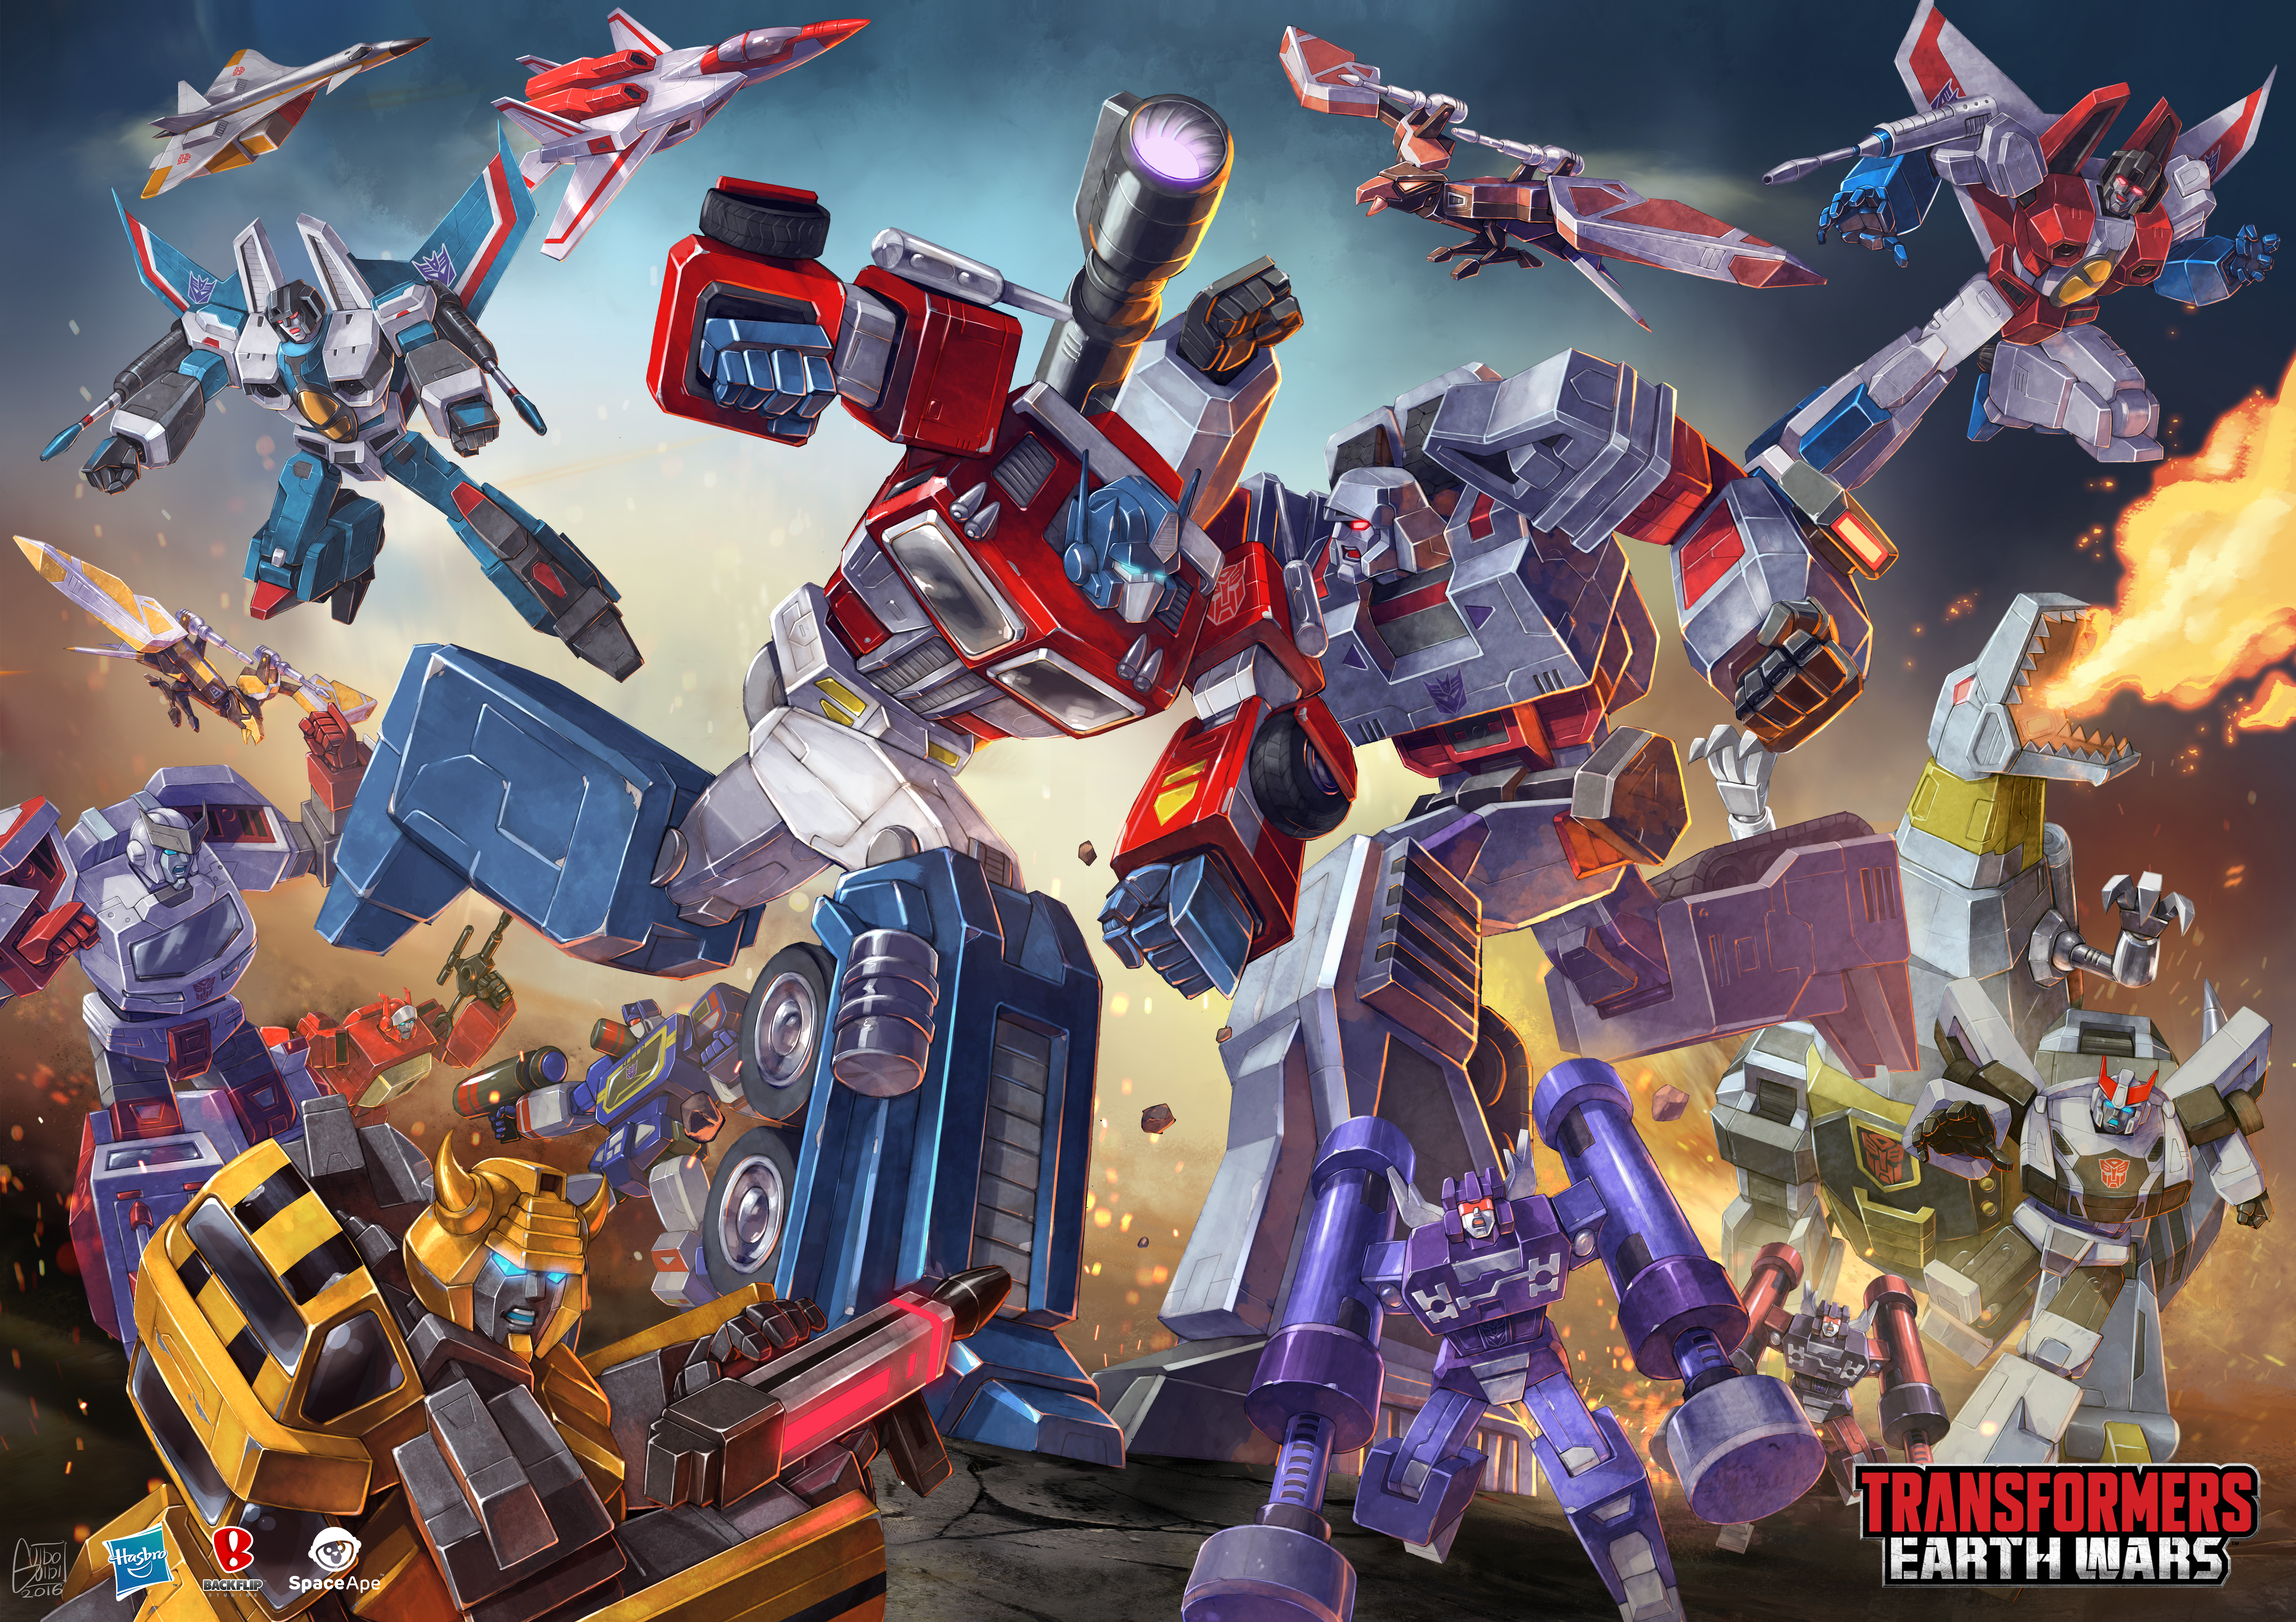 Hands-on with Transformers: Earth Wars - Space Ape's bot boshing bonanza